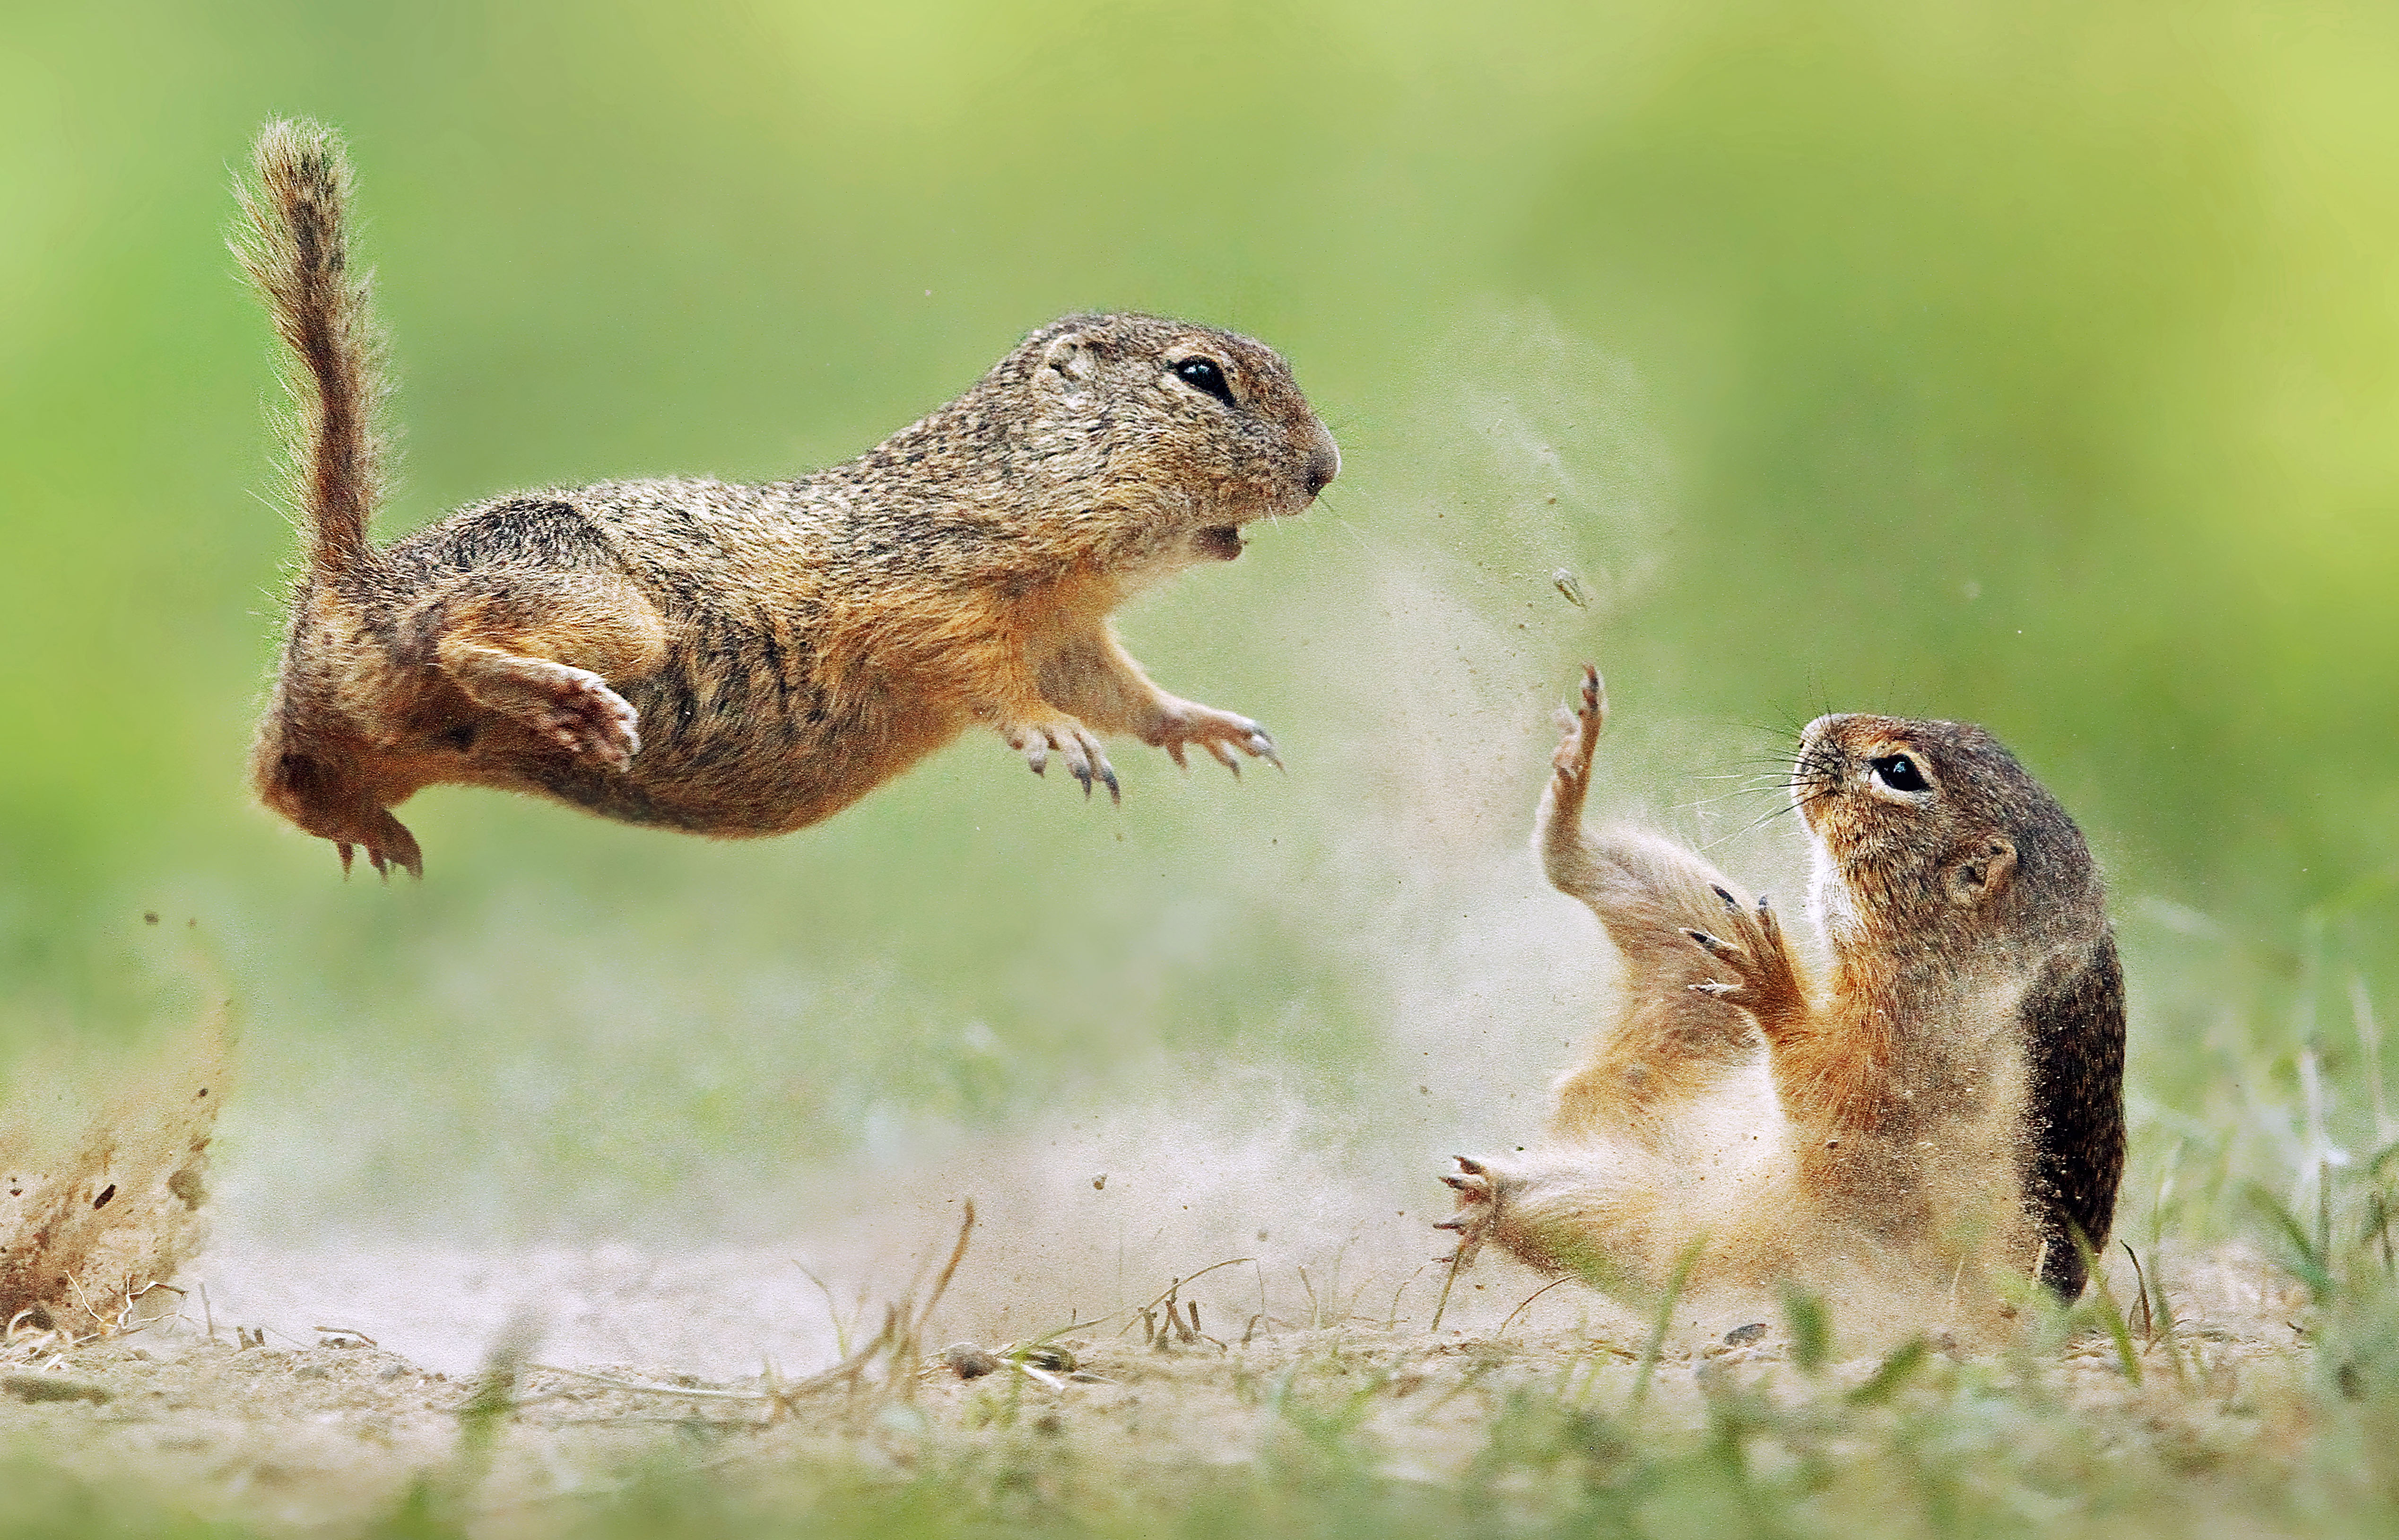 Squirrel wars! Dramatic images show red squirrel fight